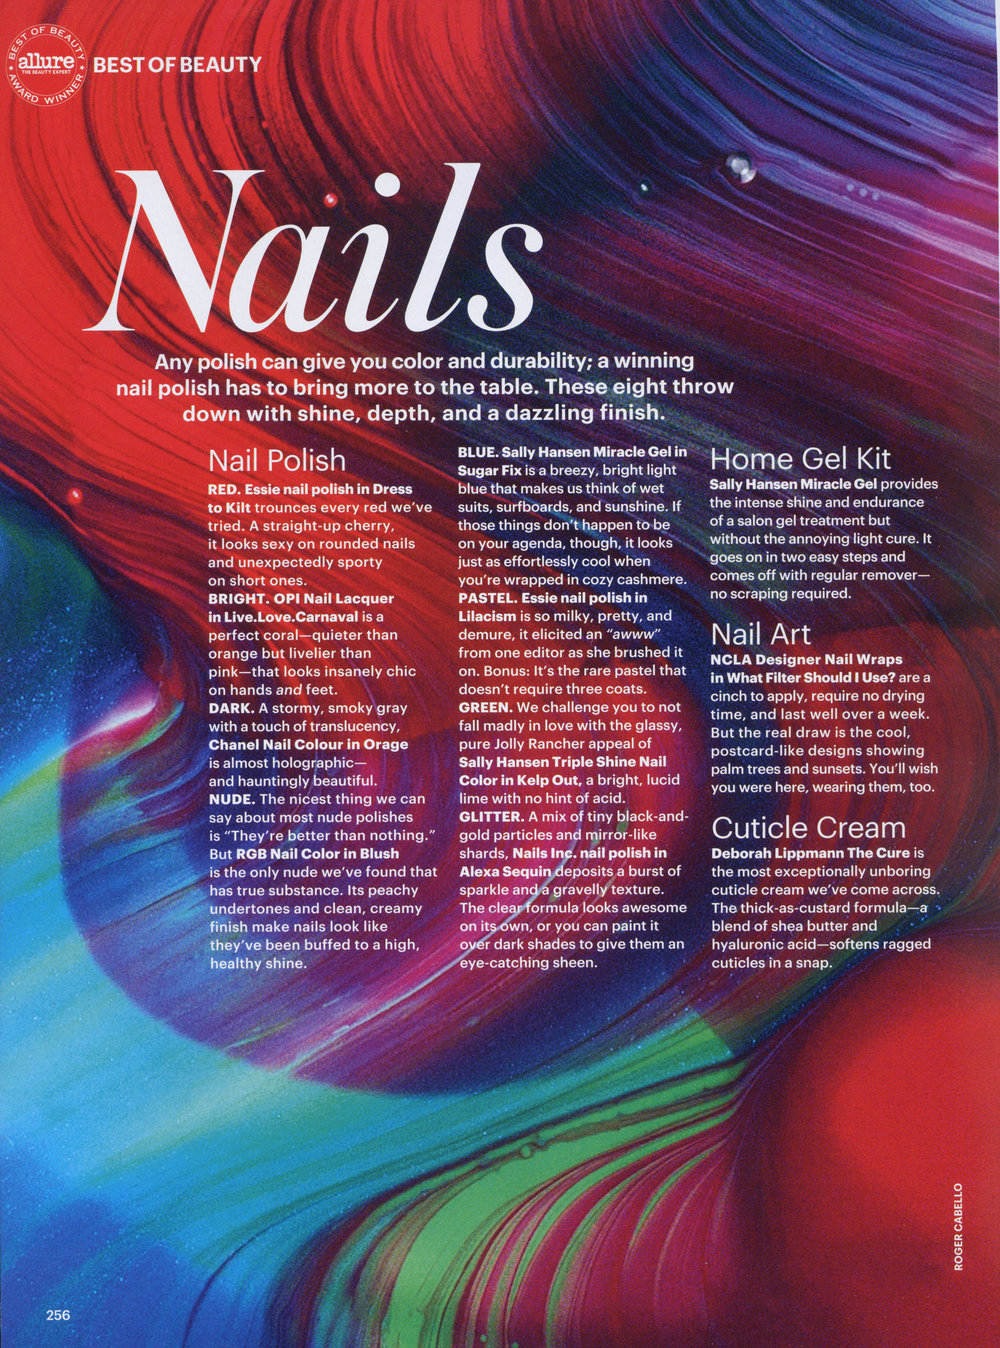 Allure_2014_10_Oct-BOB-Nails-PG256.jpg